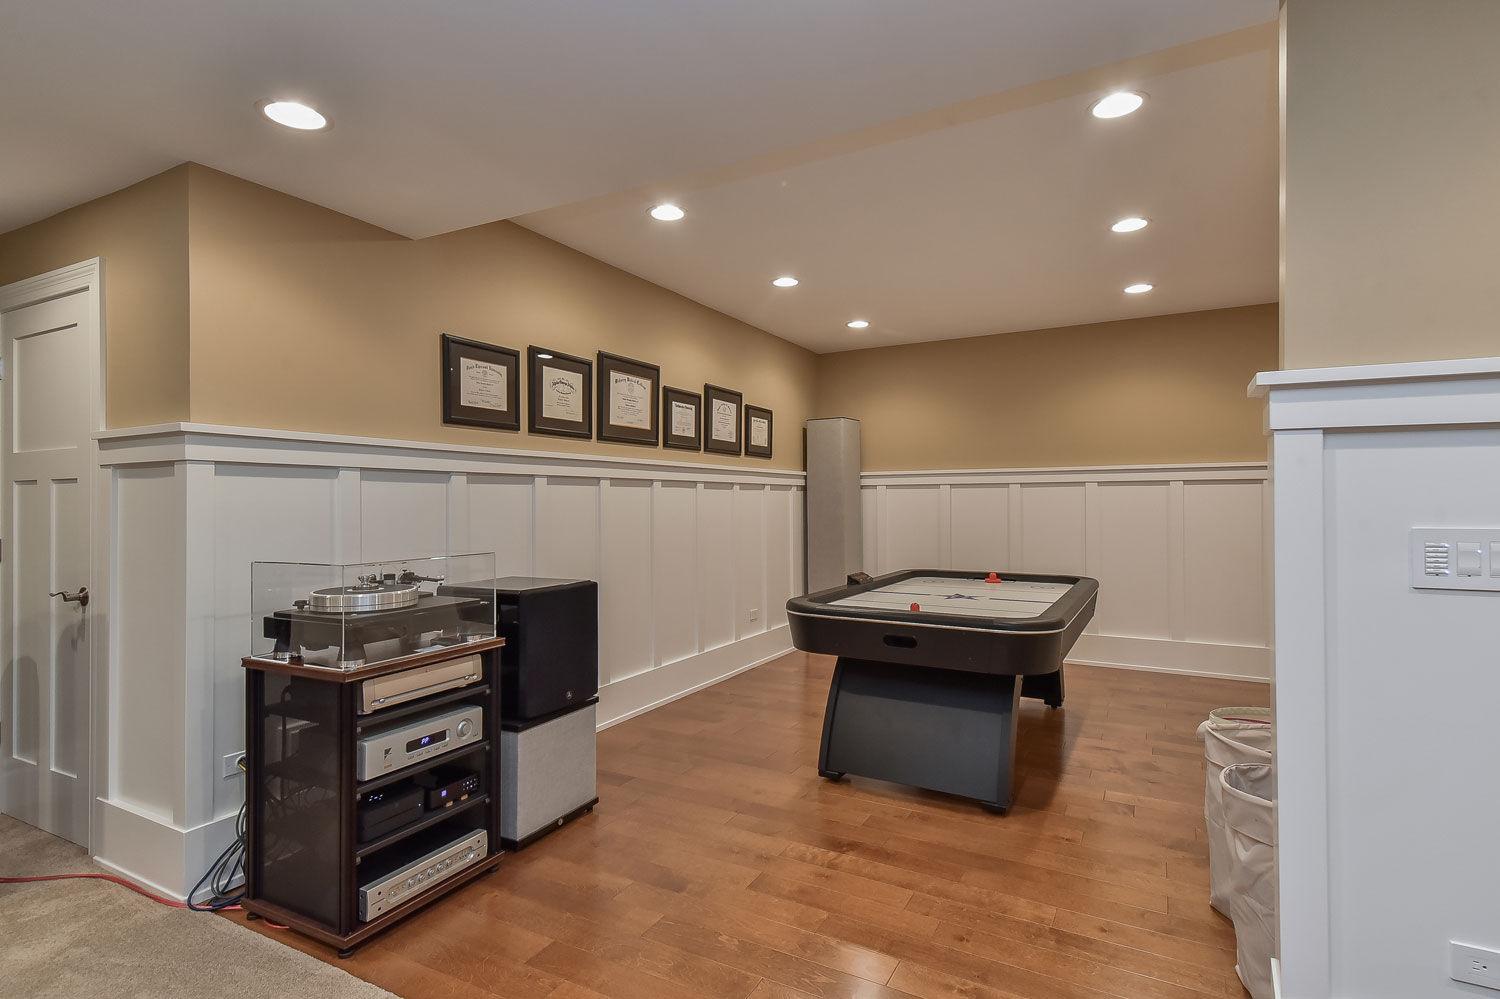 basement remodeling naperville il. Naperville Basement Finishing Before And After - Sebring Services Remodeling Il